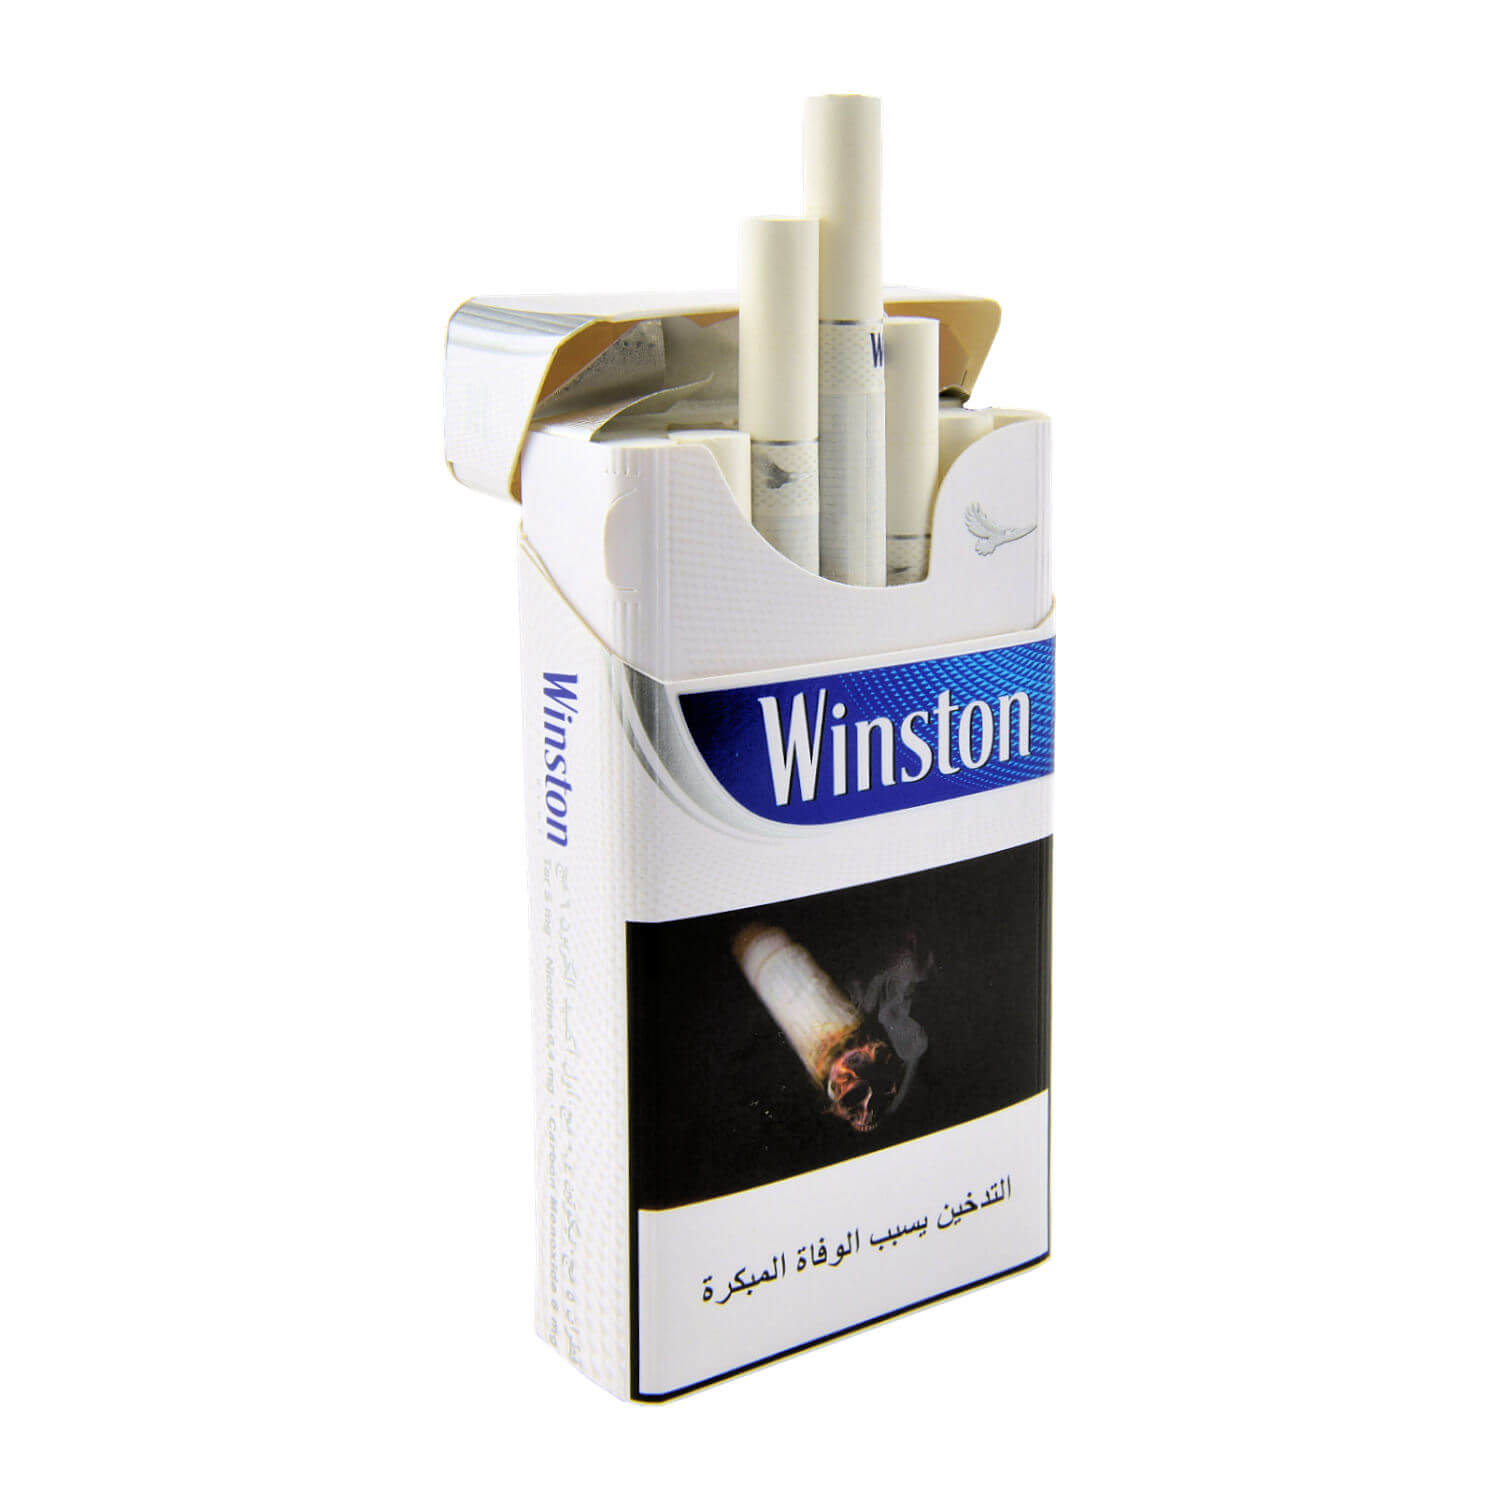 Winston Blue Cigarettes, 1 Pack